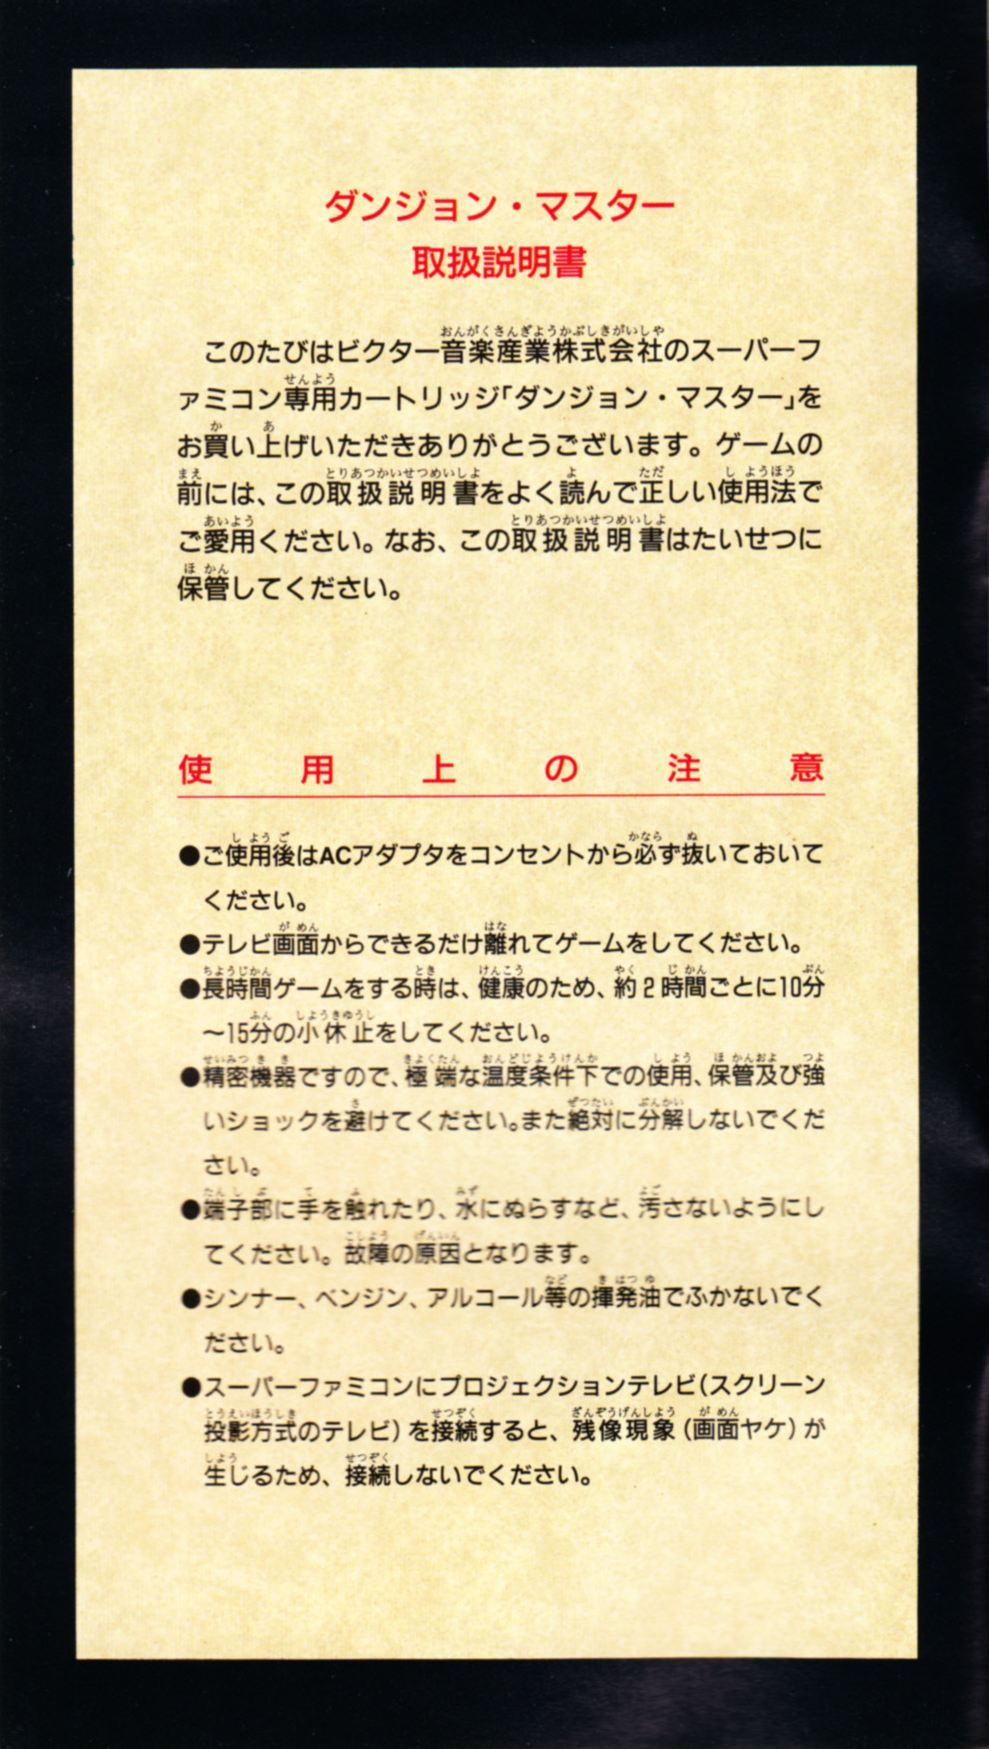 Game - Dungeon Master - JP - Super Famicom - Manual - Page 002 - Scan